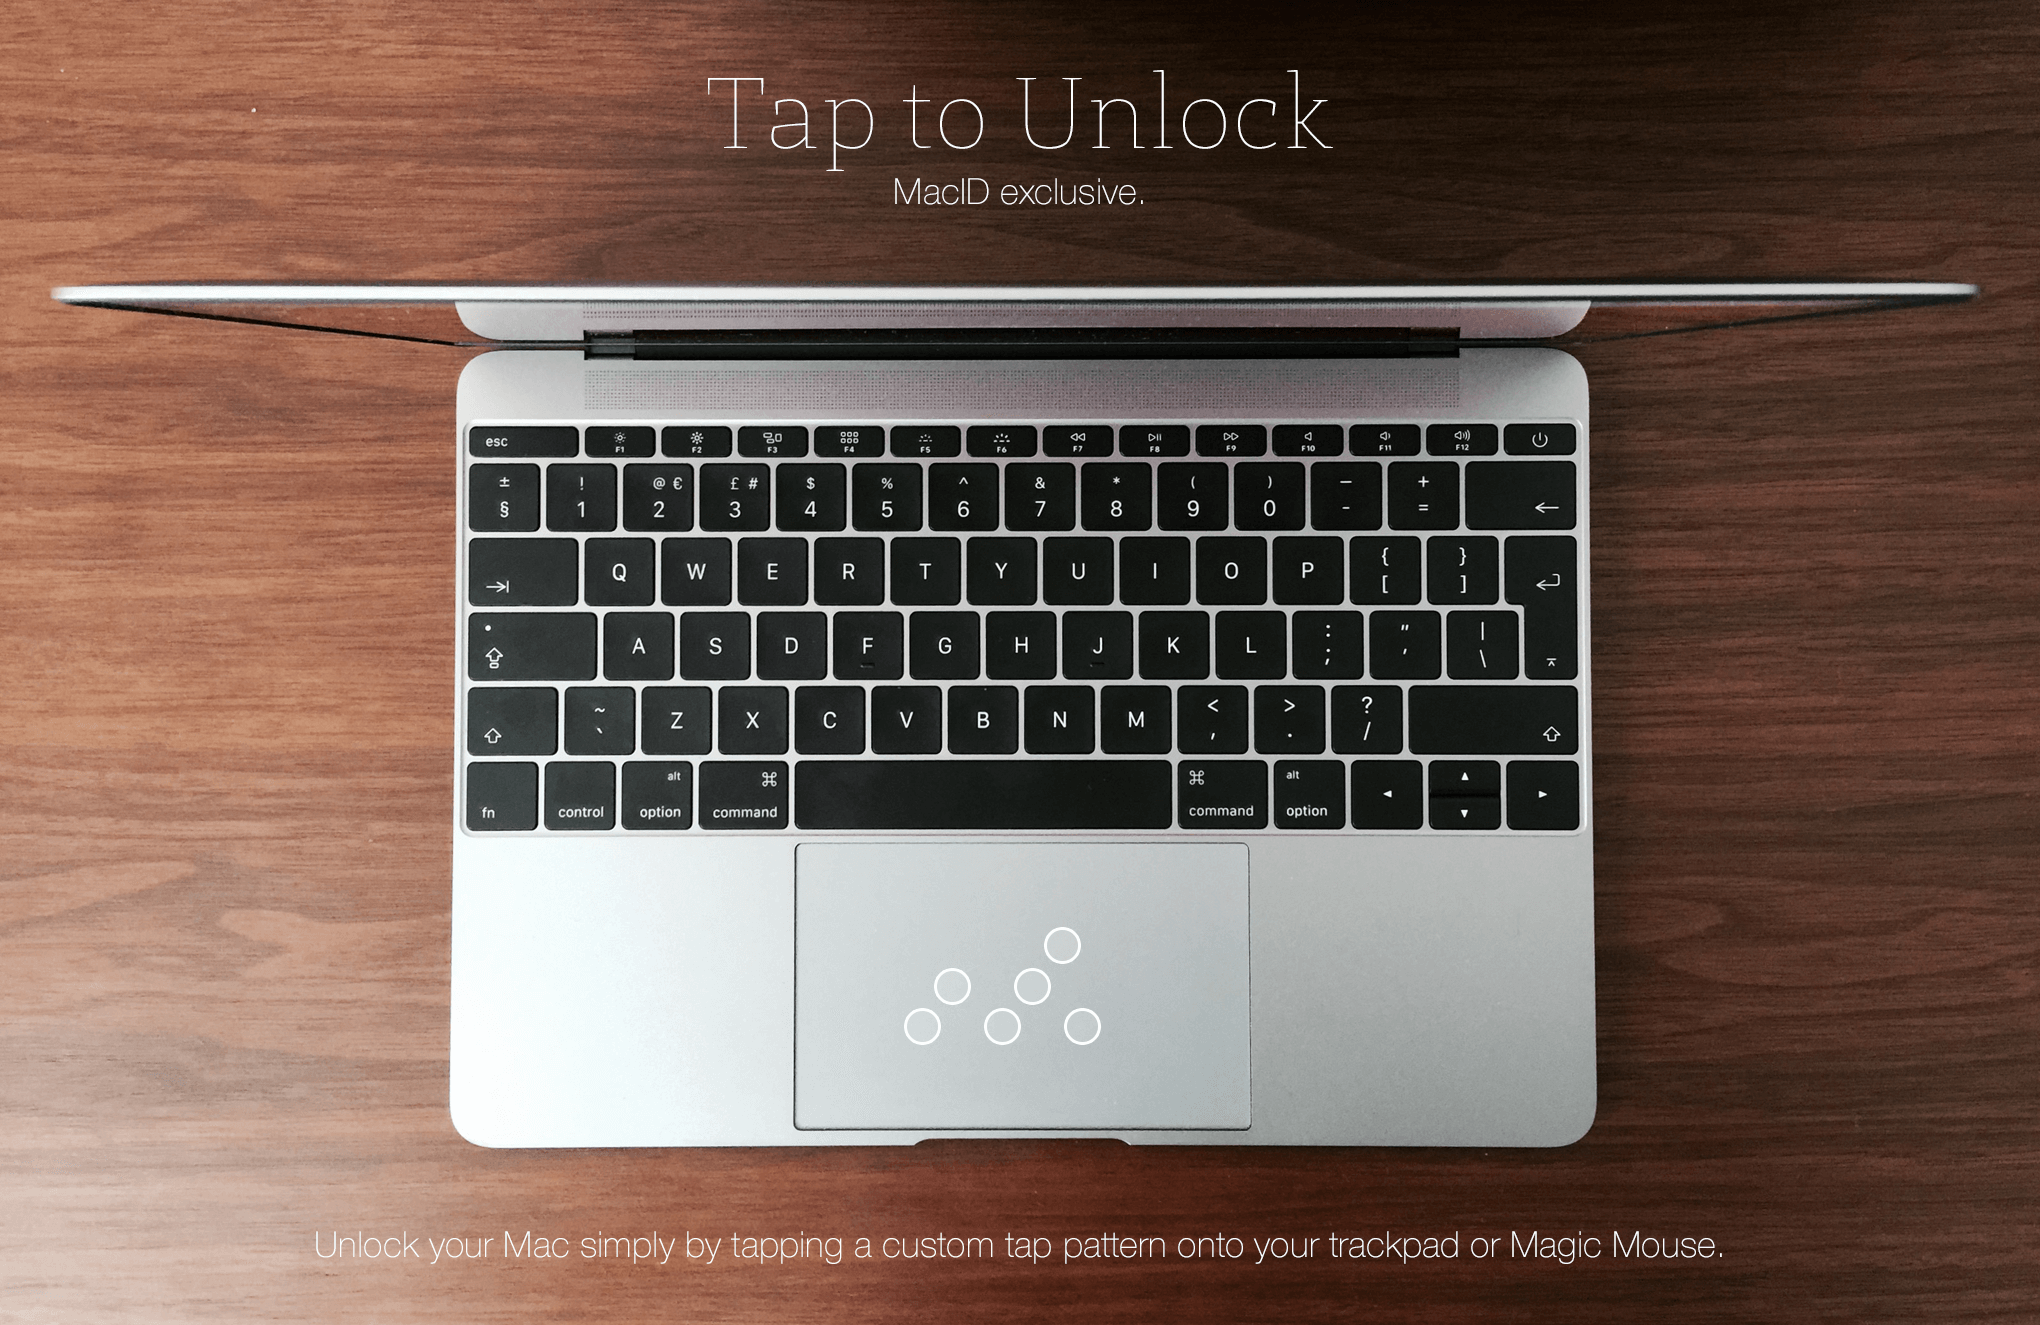 MacID - Unlock your Mac with just your fingerprint